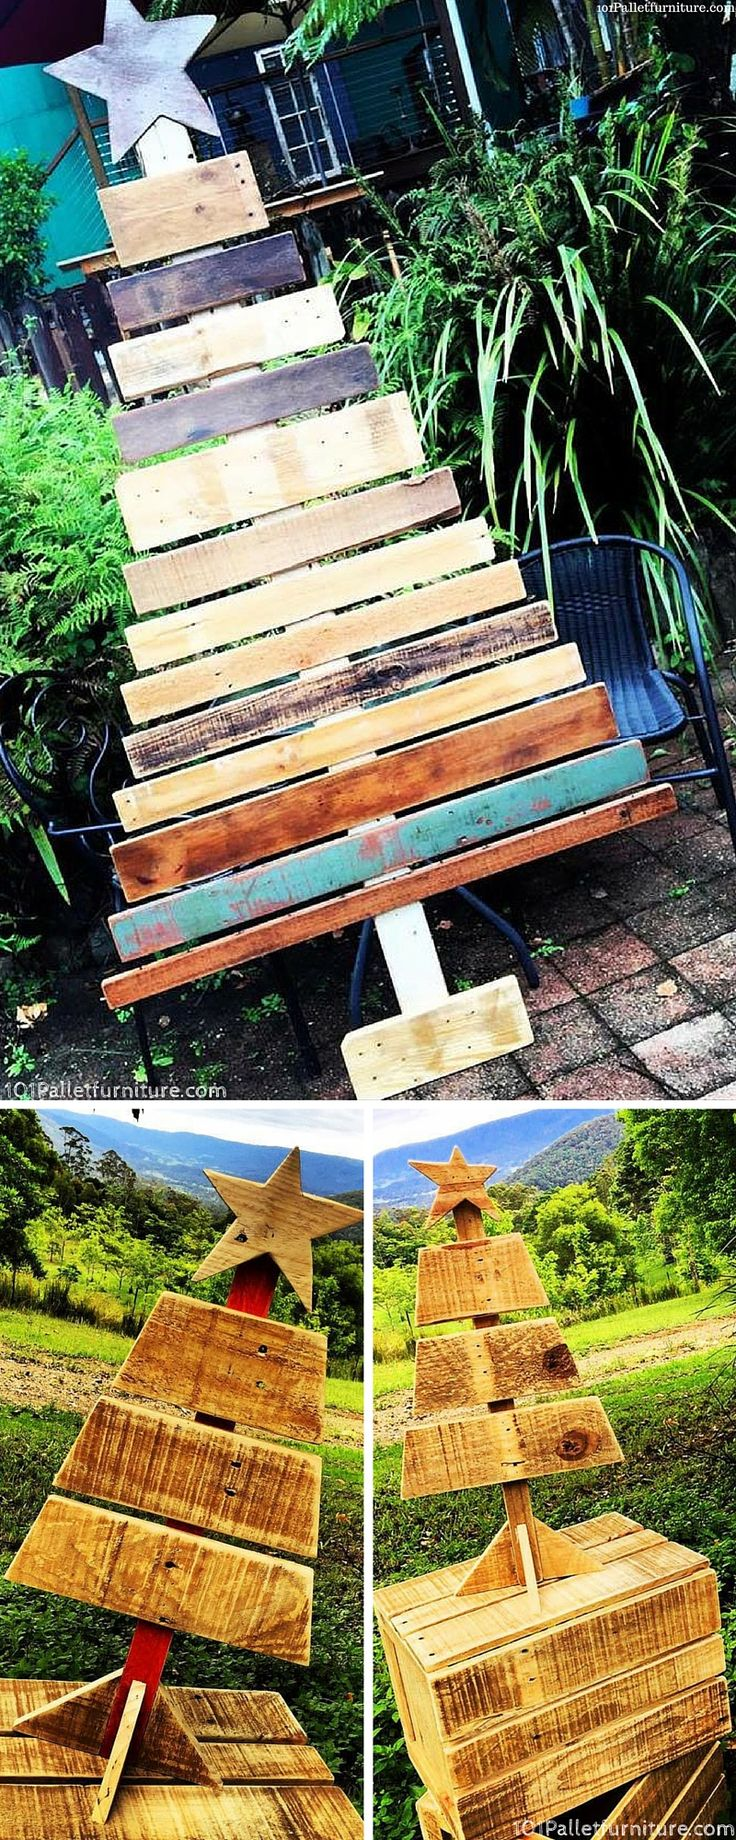 Inspiring and Decorative Wooden Pallet Tree - 101 Pallet Furniture